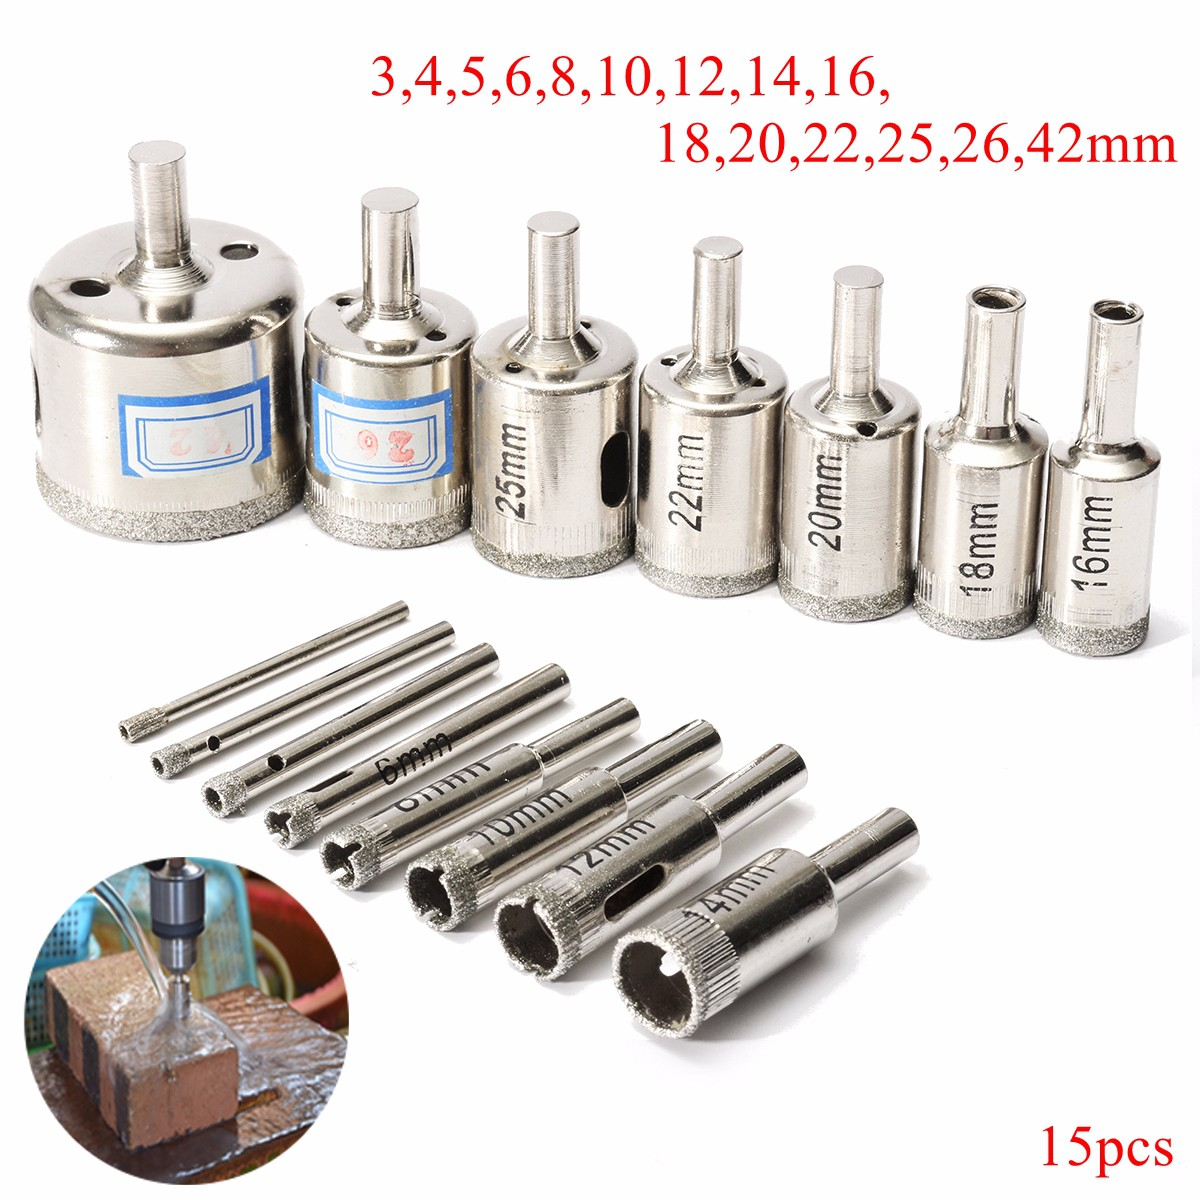 15pcs Hole Saw Set Marble Core Drill Bits 3mm-42mm Diamond Cutter Tool for Glass Marble Tile Ceramic Glass Cutting Drilling sector specific regulation in the telecommunication market